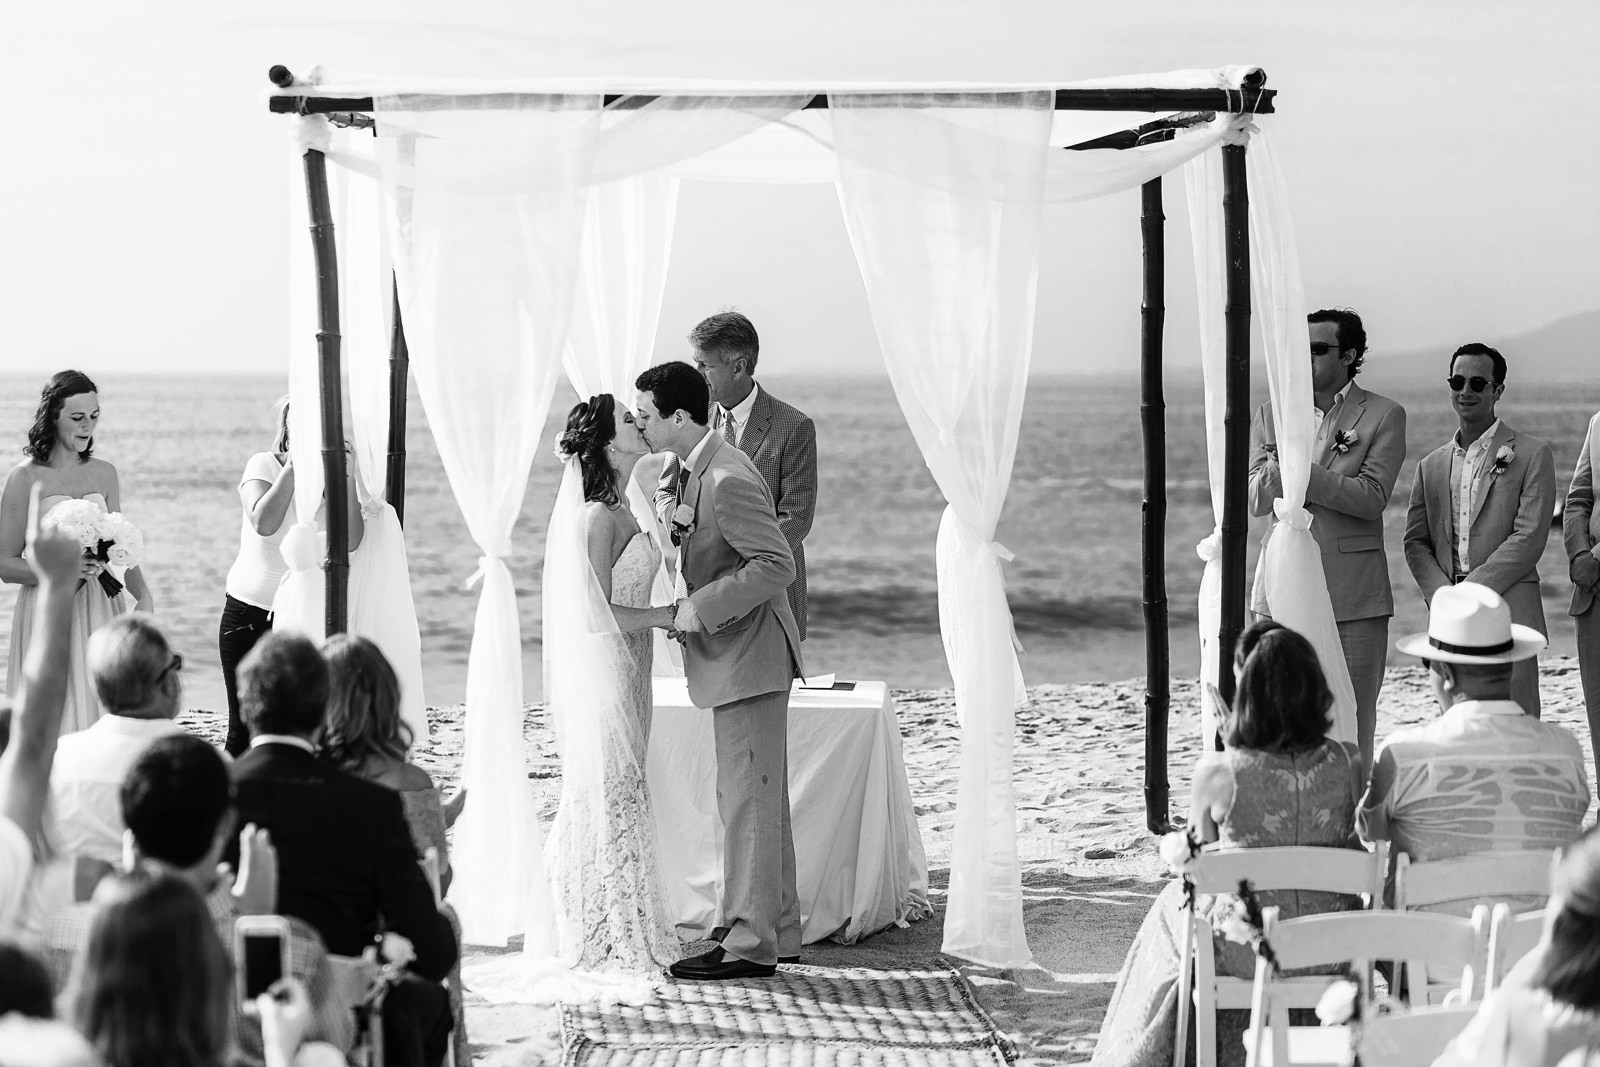 Kiss at wedding ceremony on the beach - Eder Acevedo cancun los cabos vallarta wedding photographer